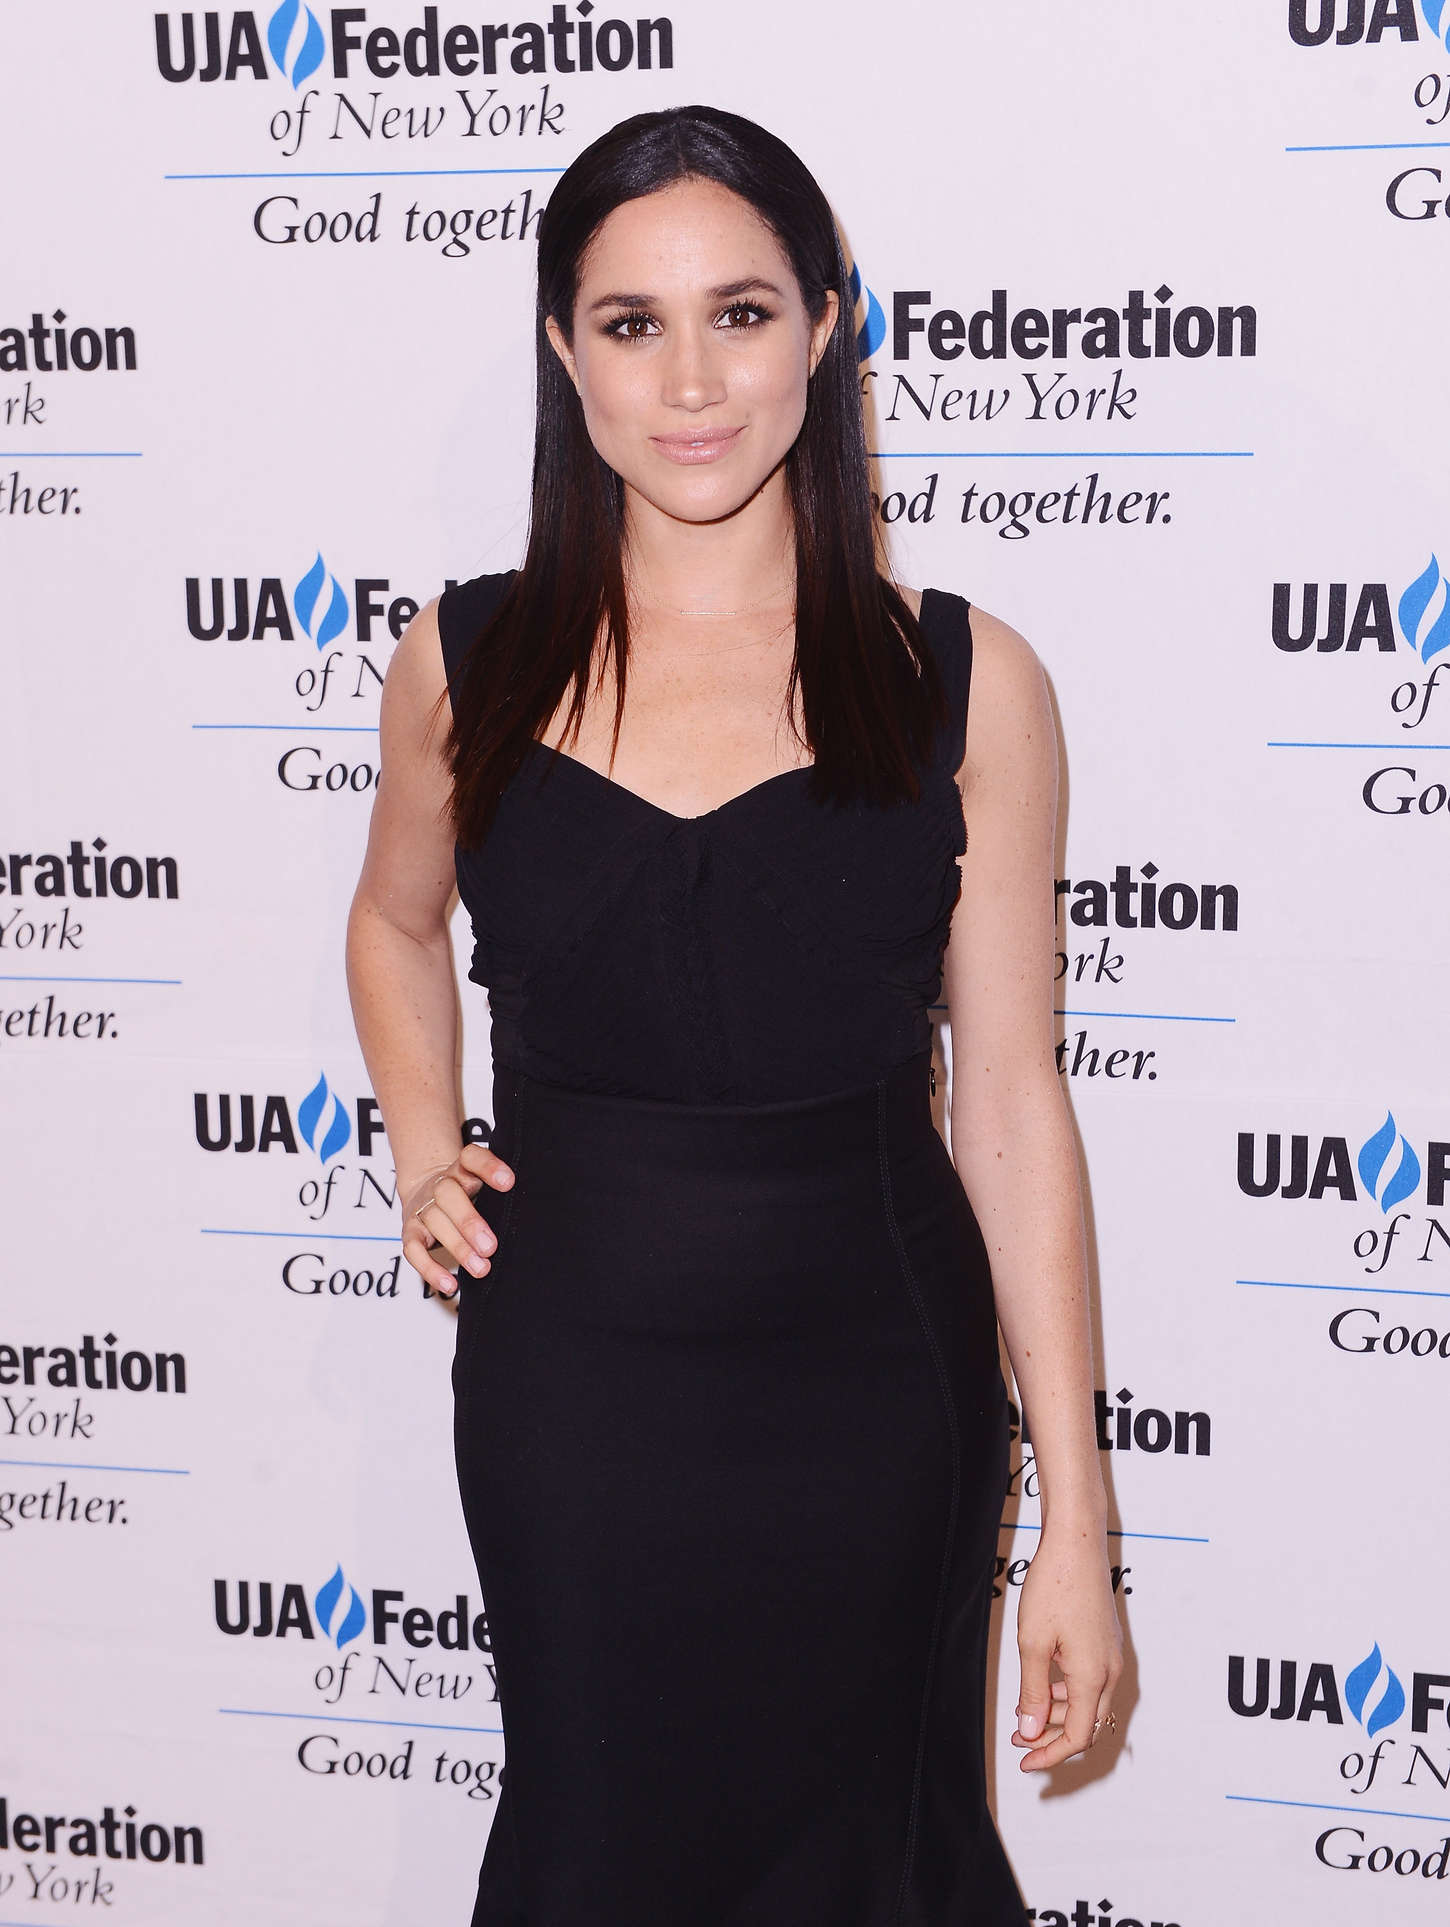 Meghan Markle - UJA-Federation New York's Entertainment Division Signature Gala in NY